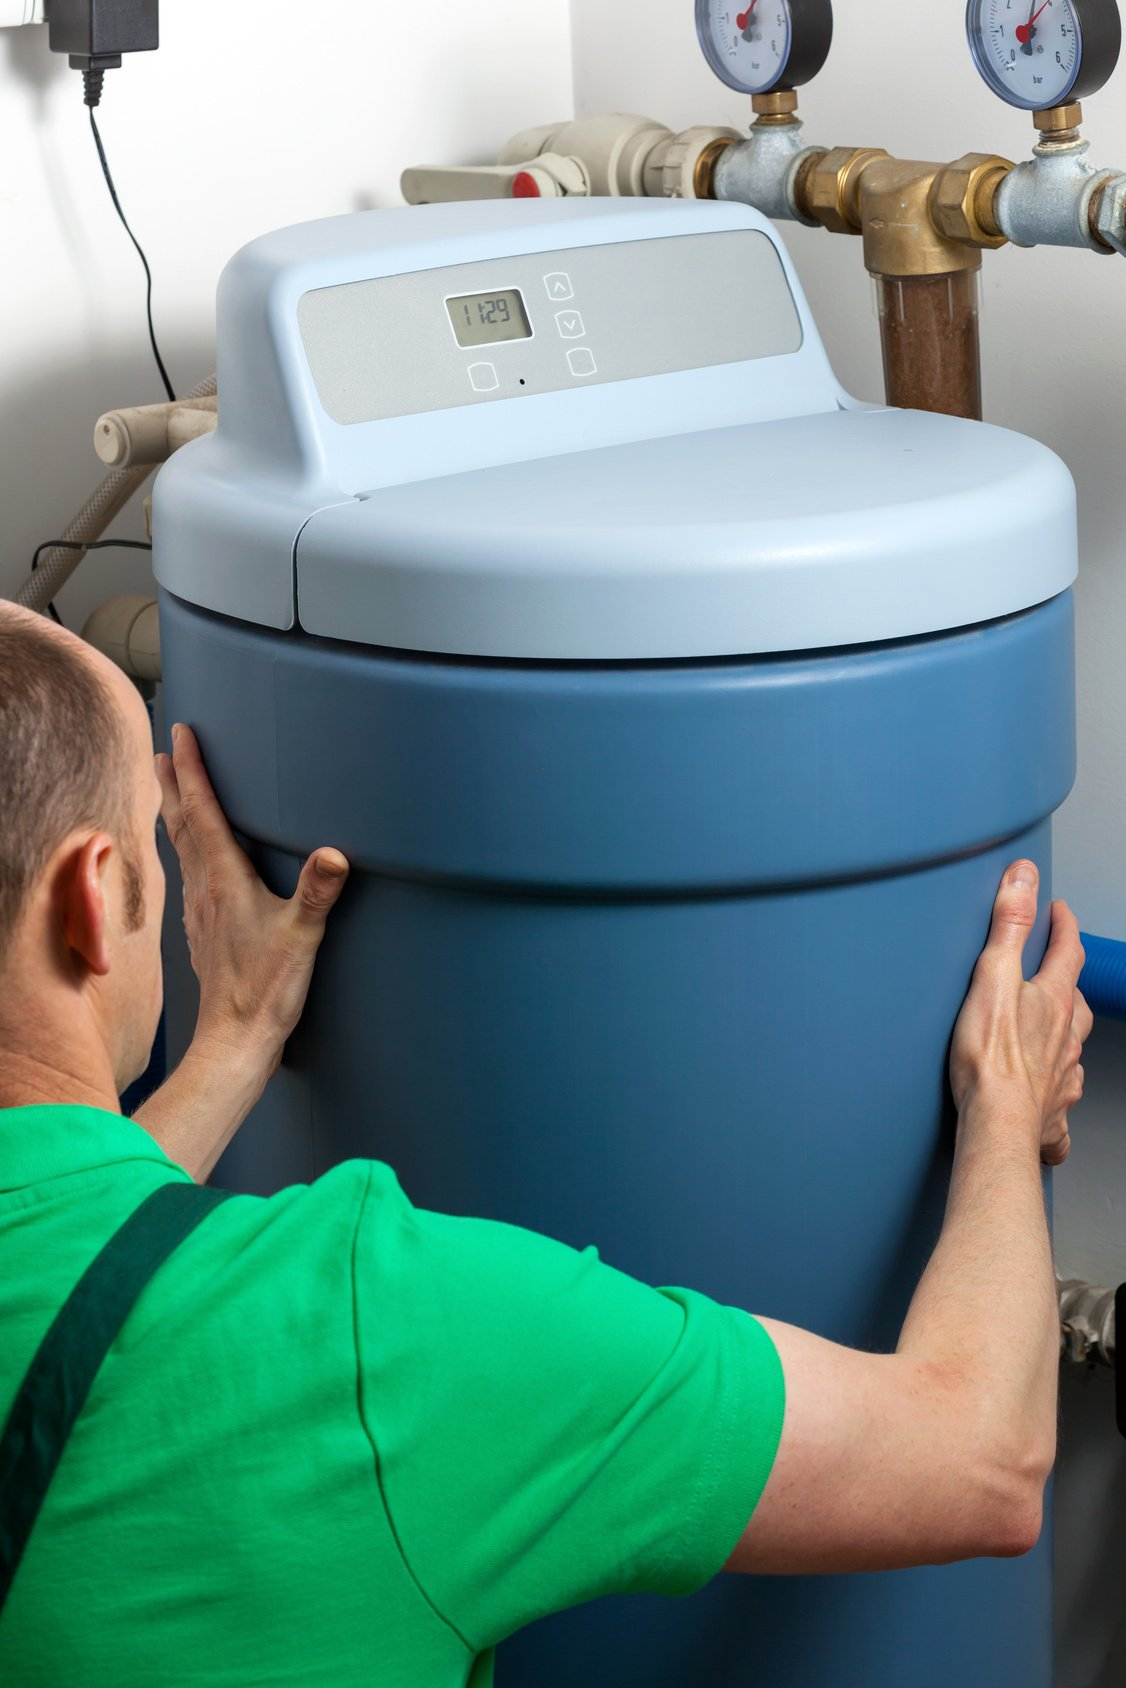 Water-Softener Water Softeners and Water Filtration Systems